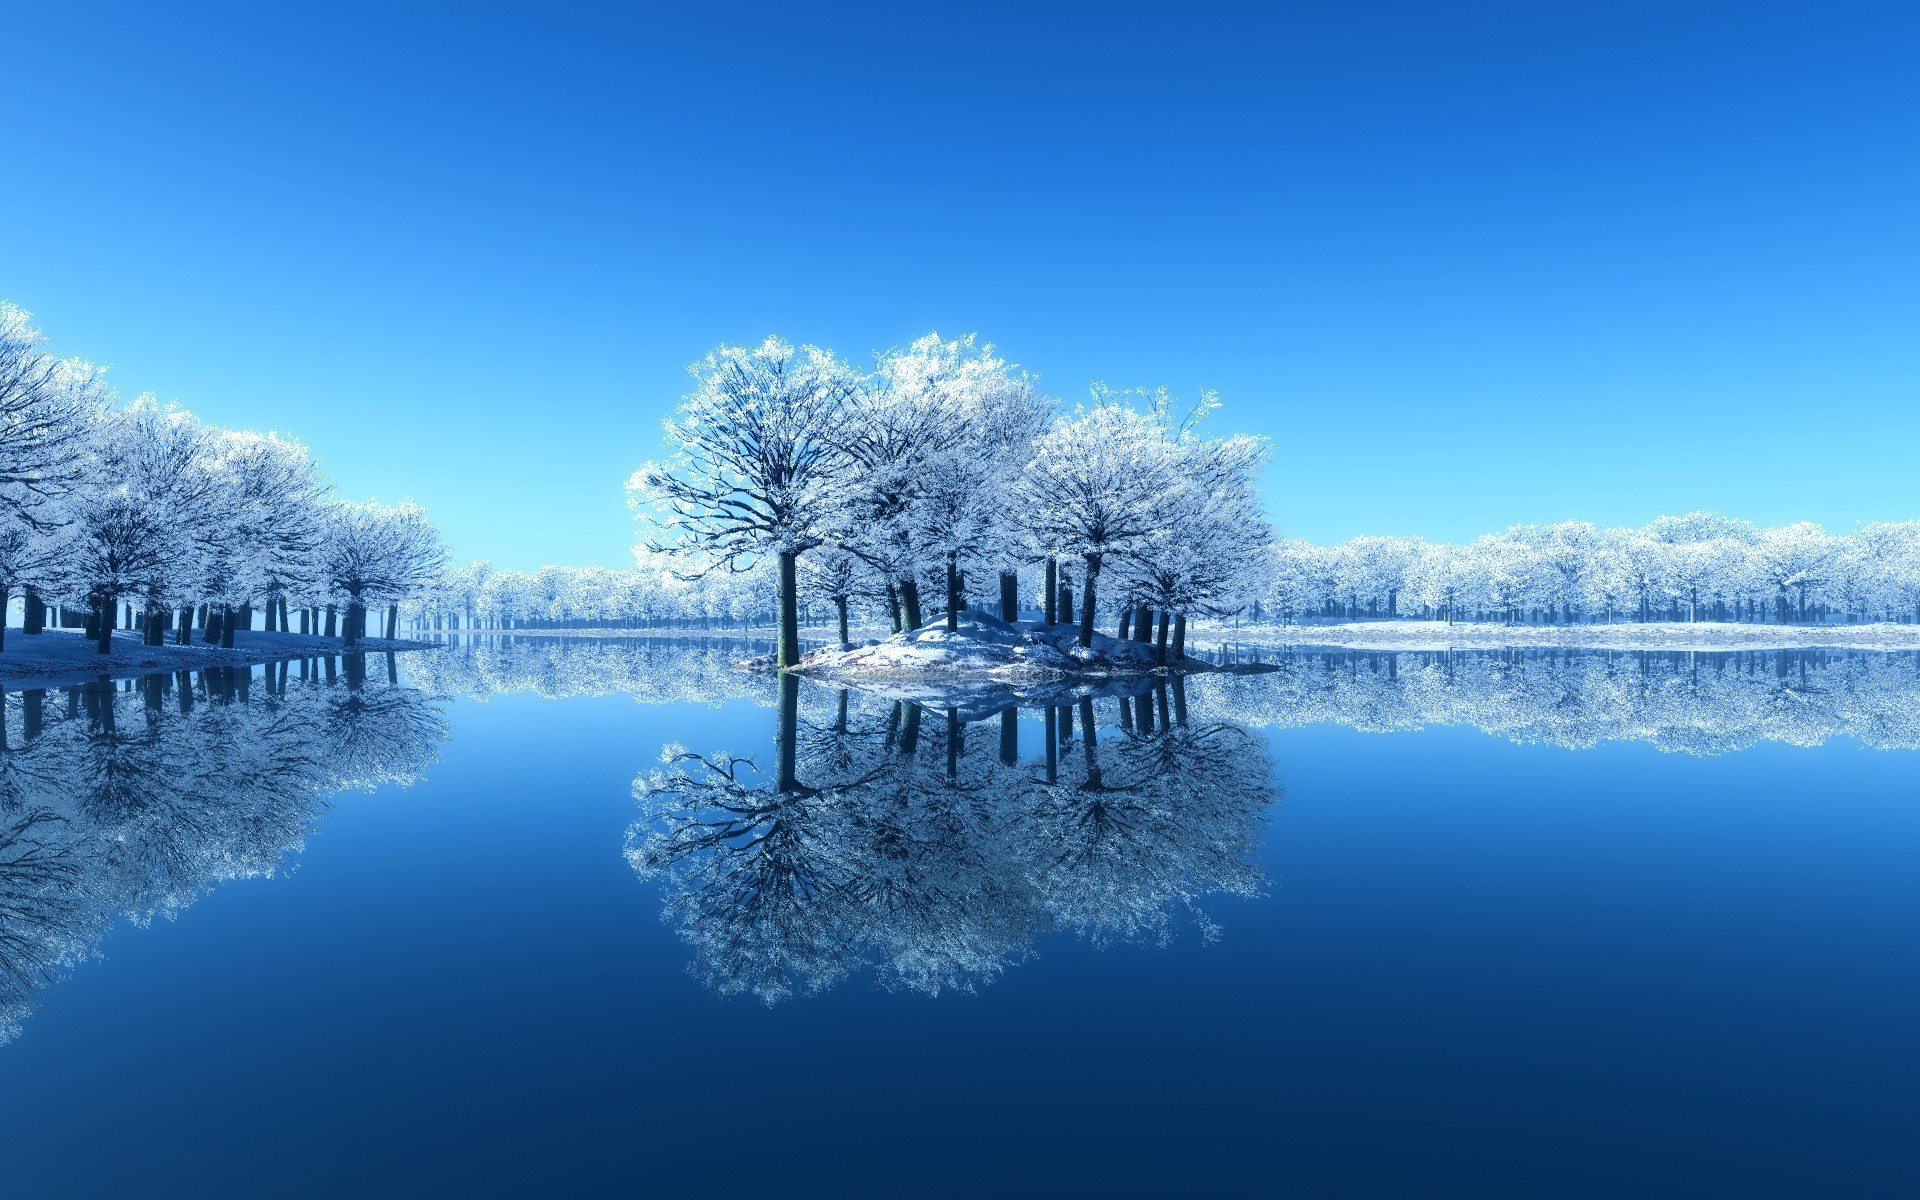 January Wallpaper Sceneries 30 Background Pictures 1920x1200